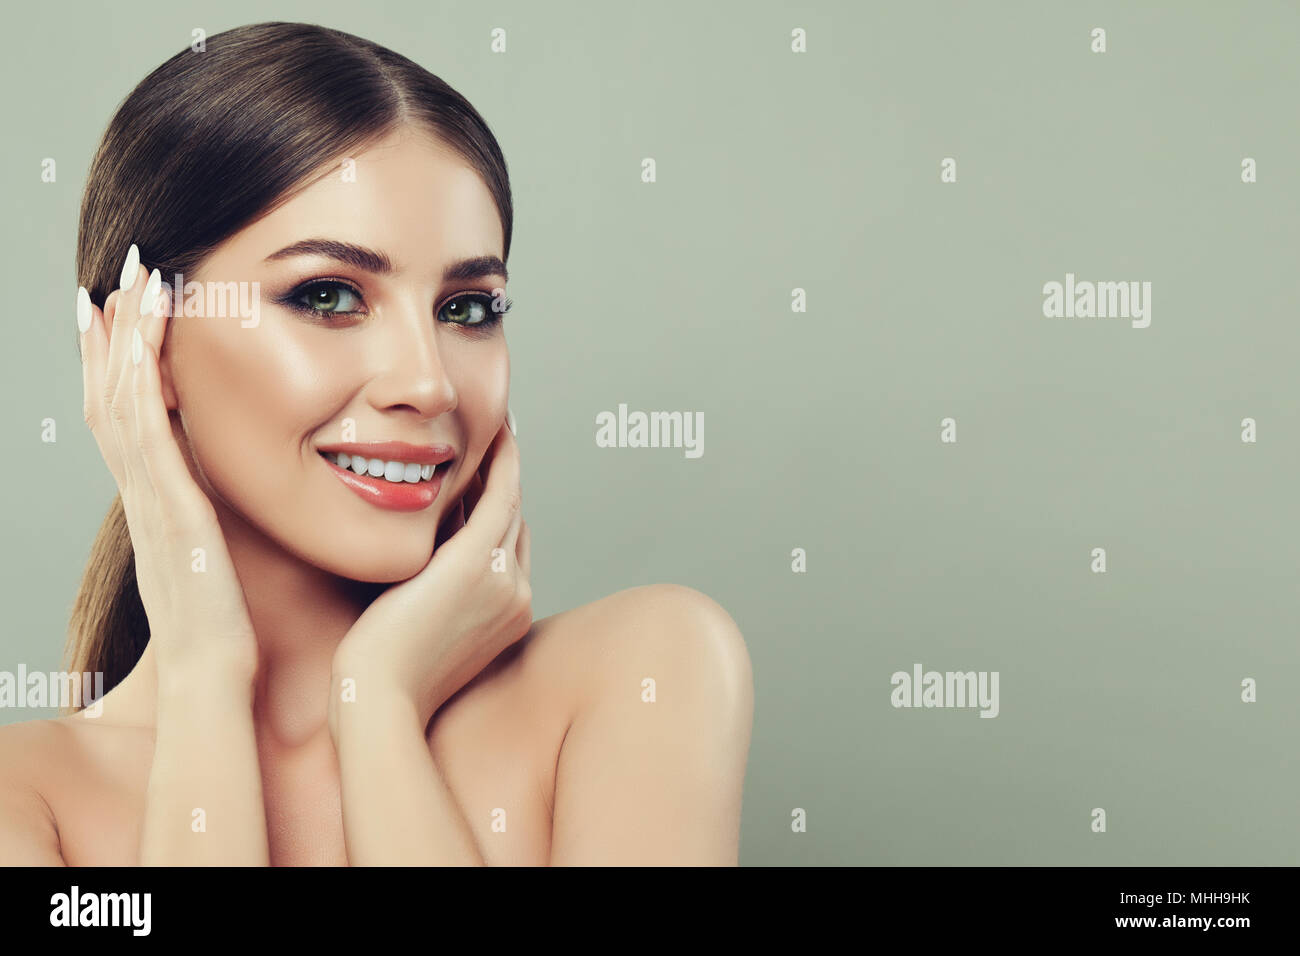 Spa Woman Smiling And Touching Her Hand Her Face On Banner Background With Copy Space For Text Spa Beauty Facial Treatment And Skin Care Concept Stock Photo Alamy